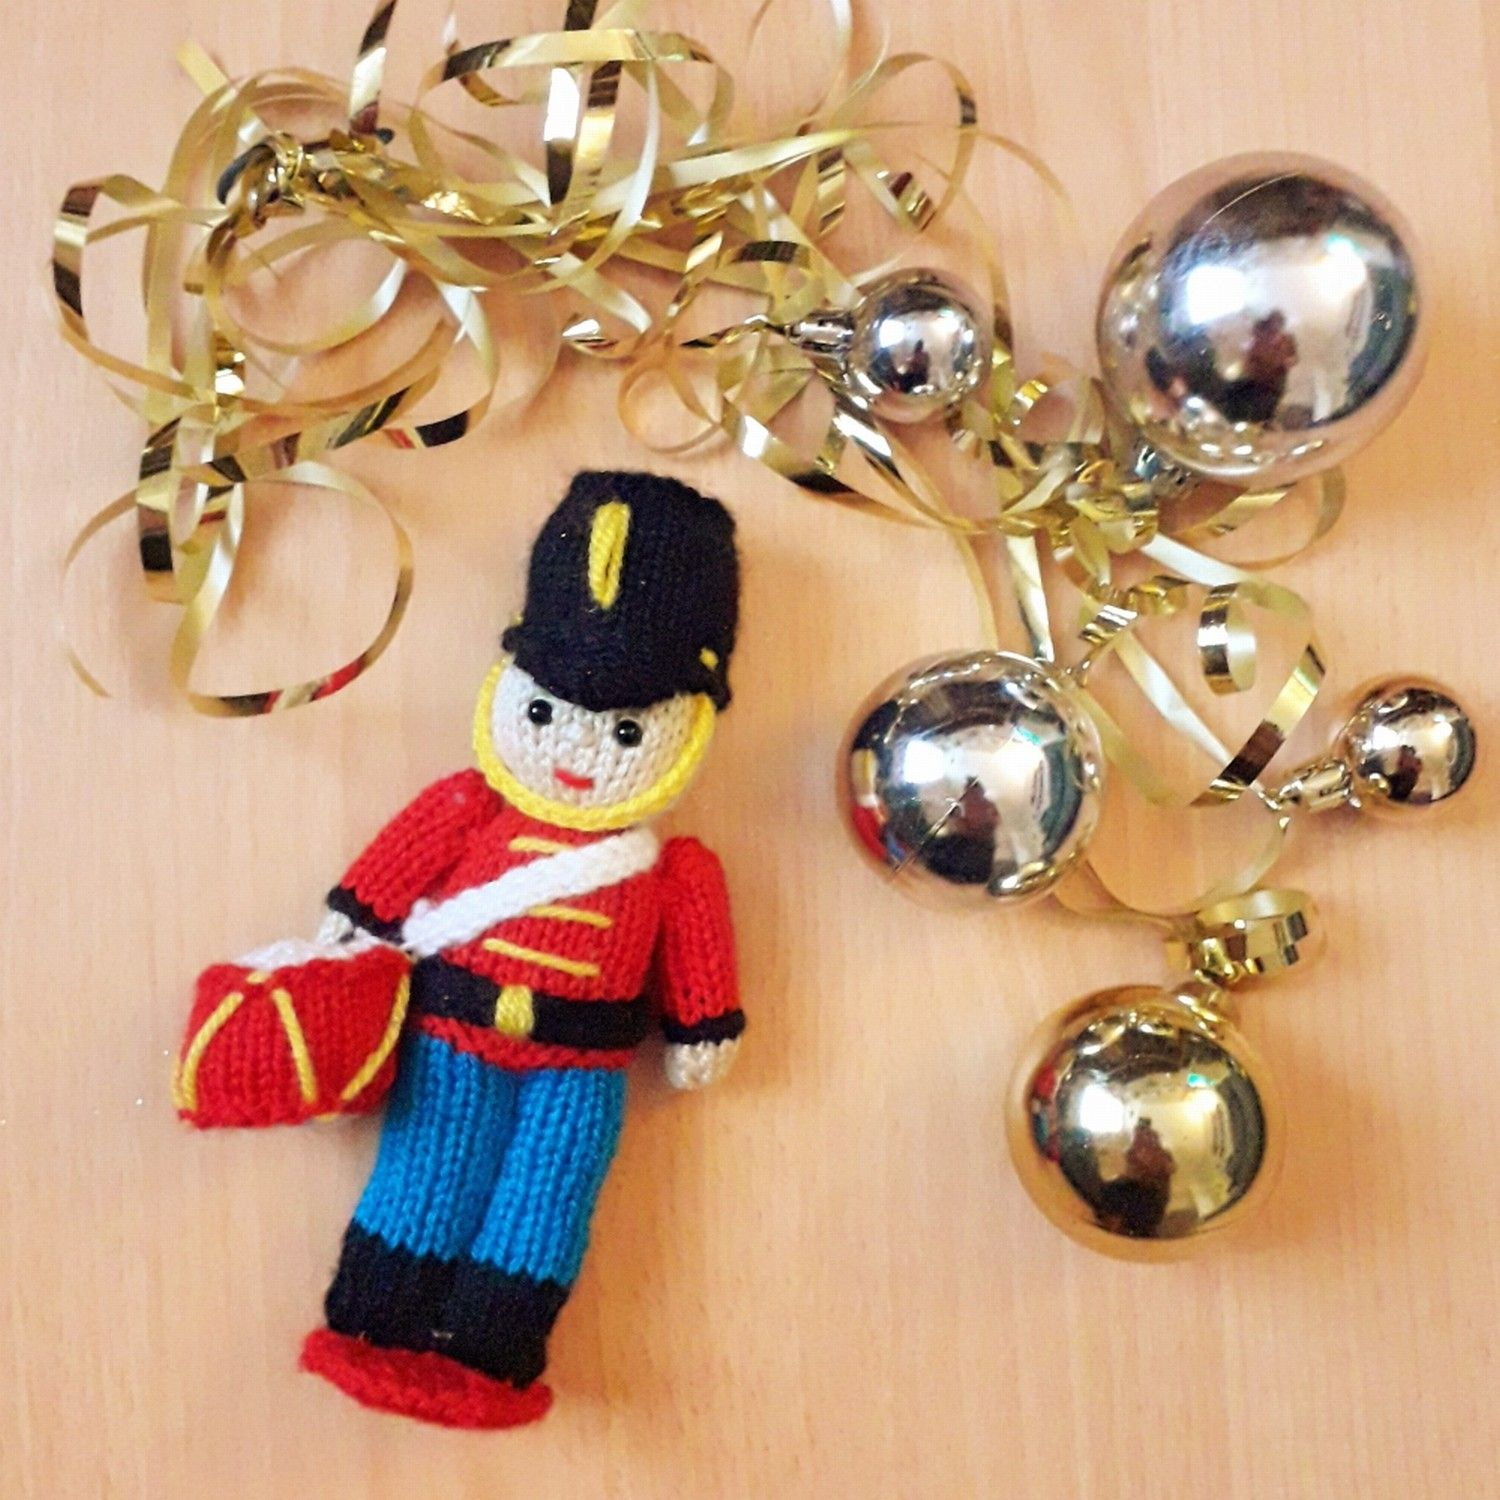 Toy Sol r Christmas decoration knitting pattern